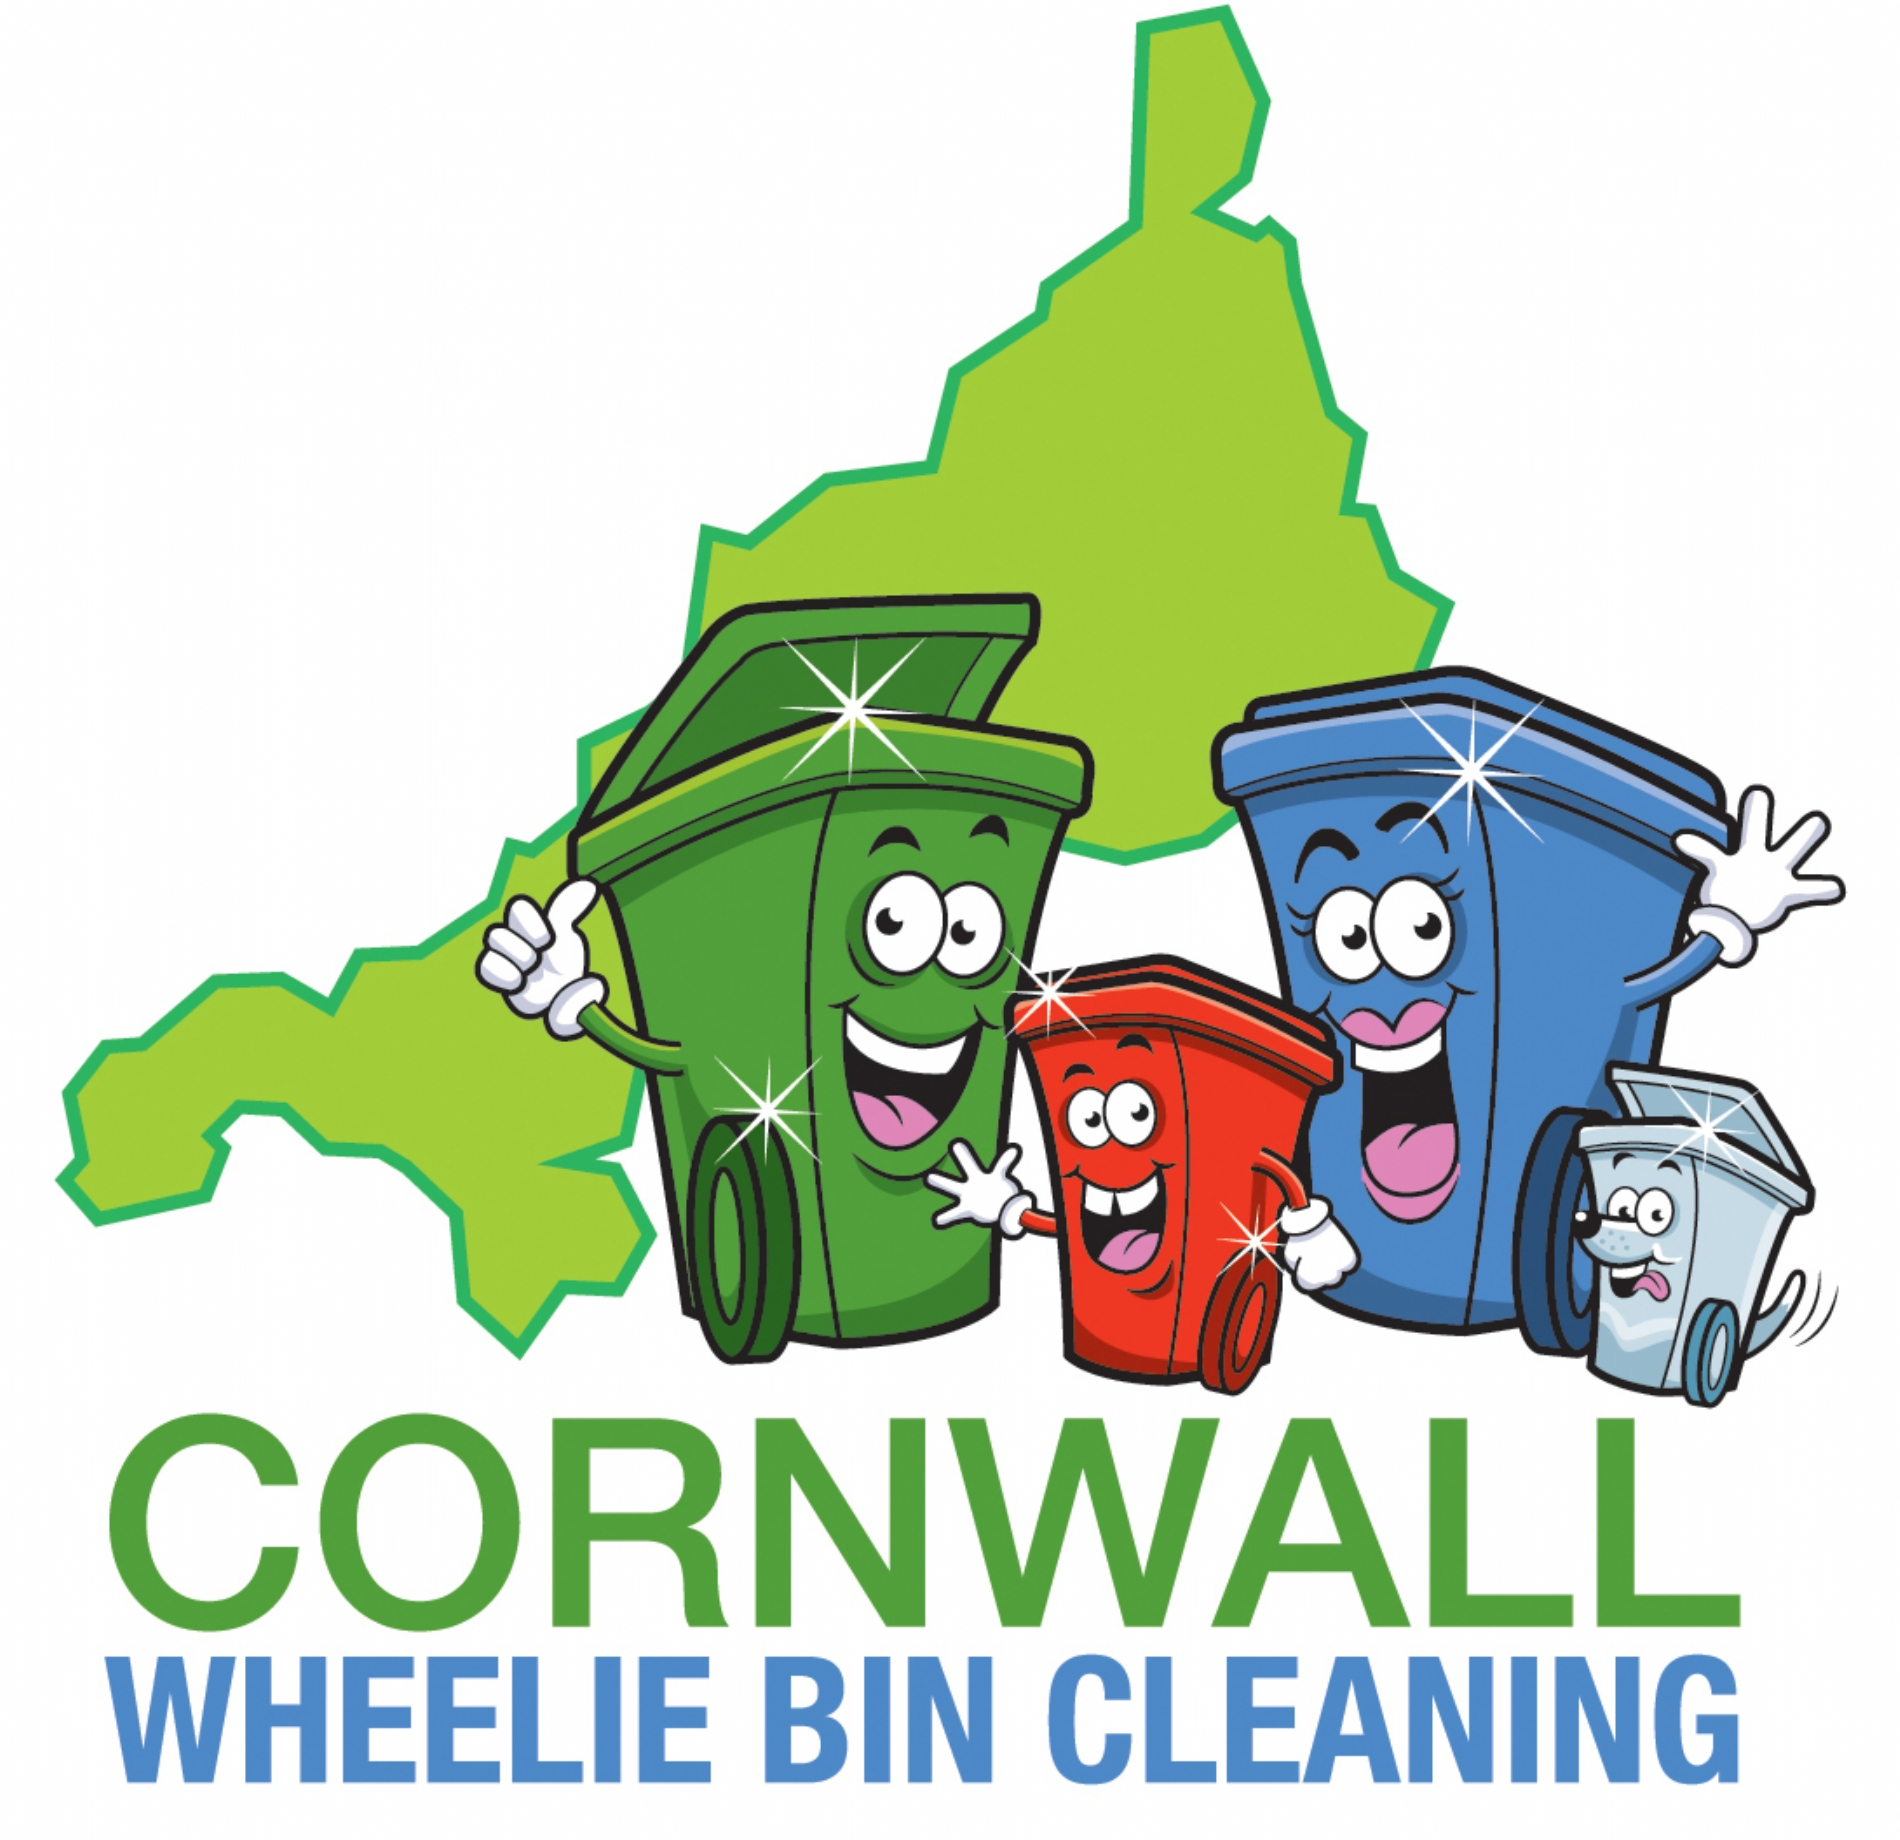 Cornwall Wheelie Bin Cleaning